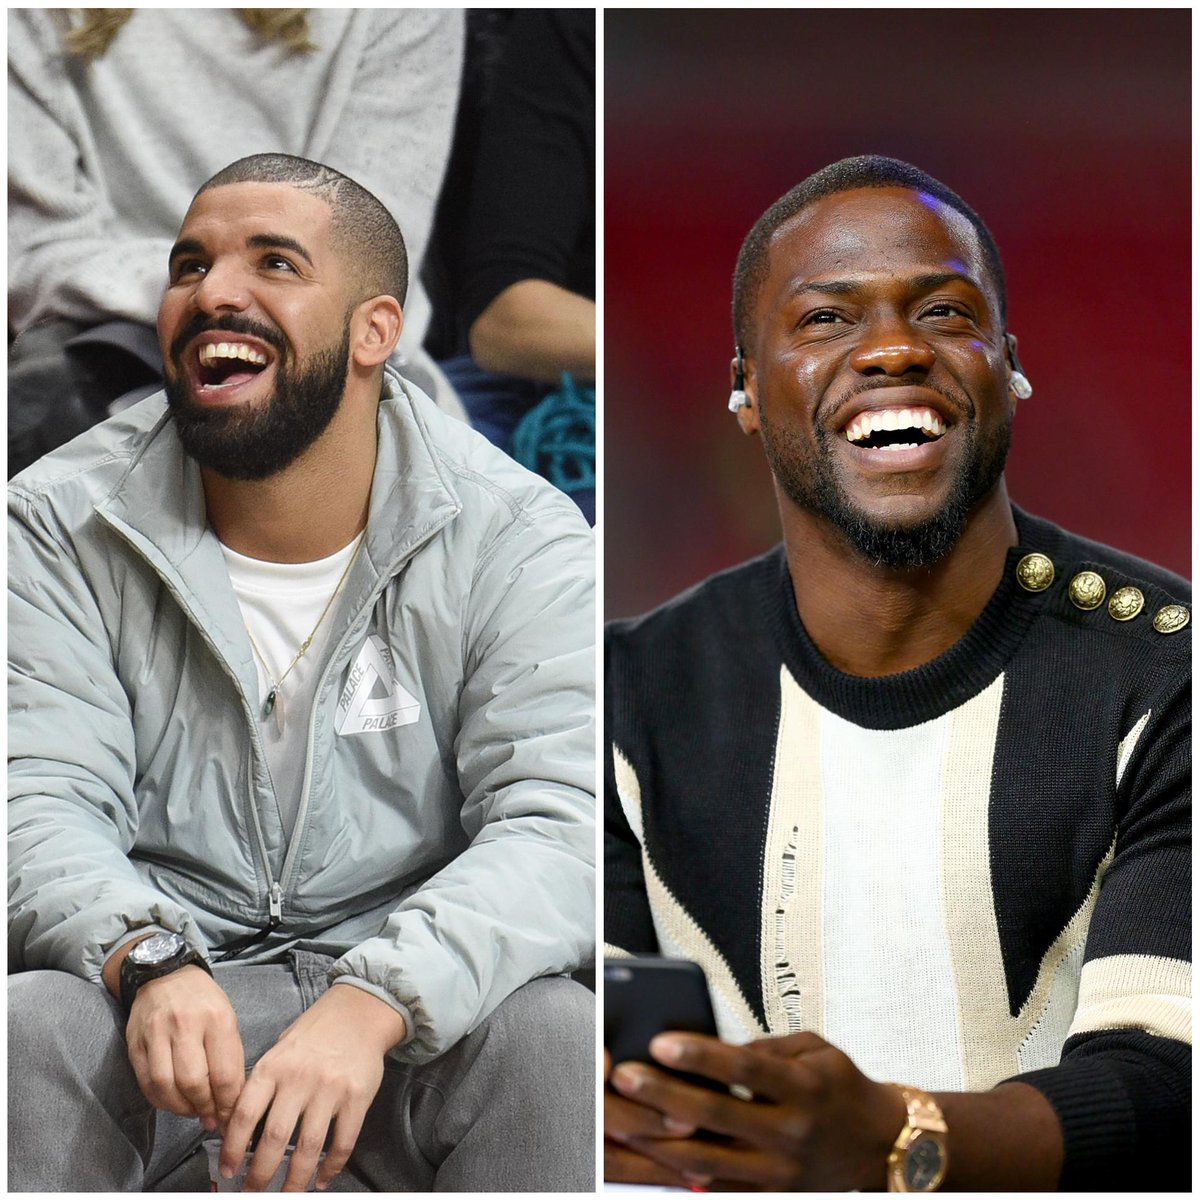 Drake and Kevin Hart will be the coaches for the Canada and USA teams at the NBA All-Star Celebrity Game.